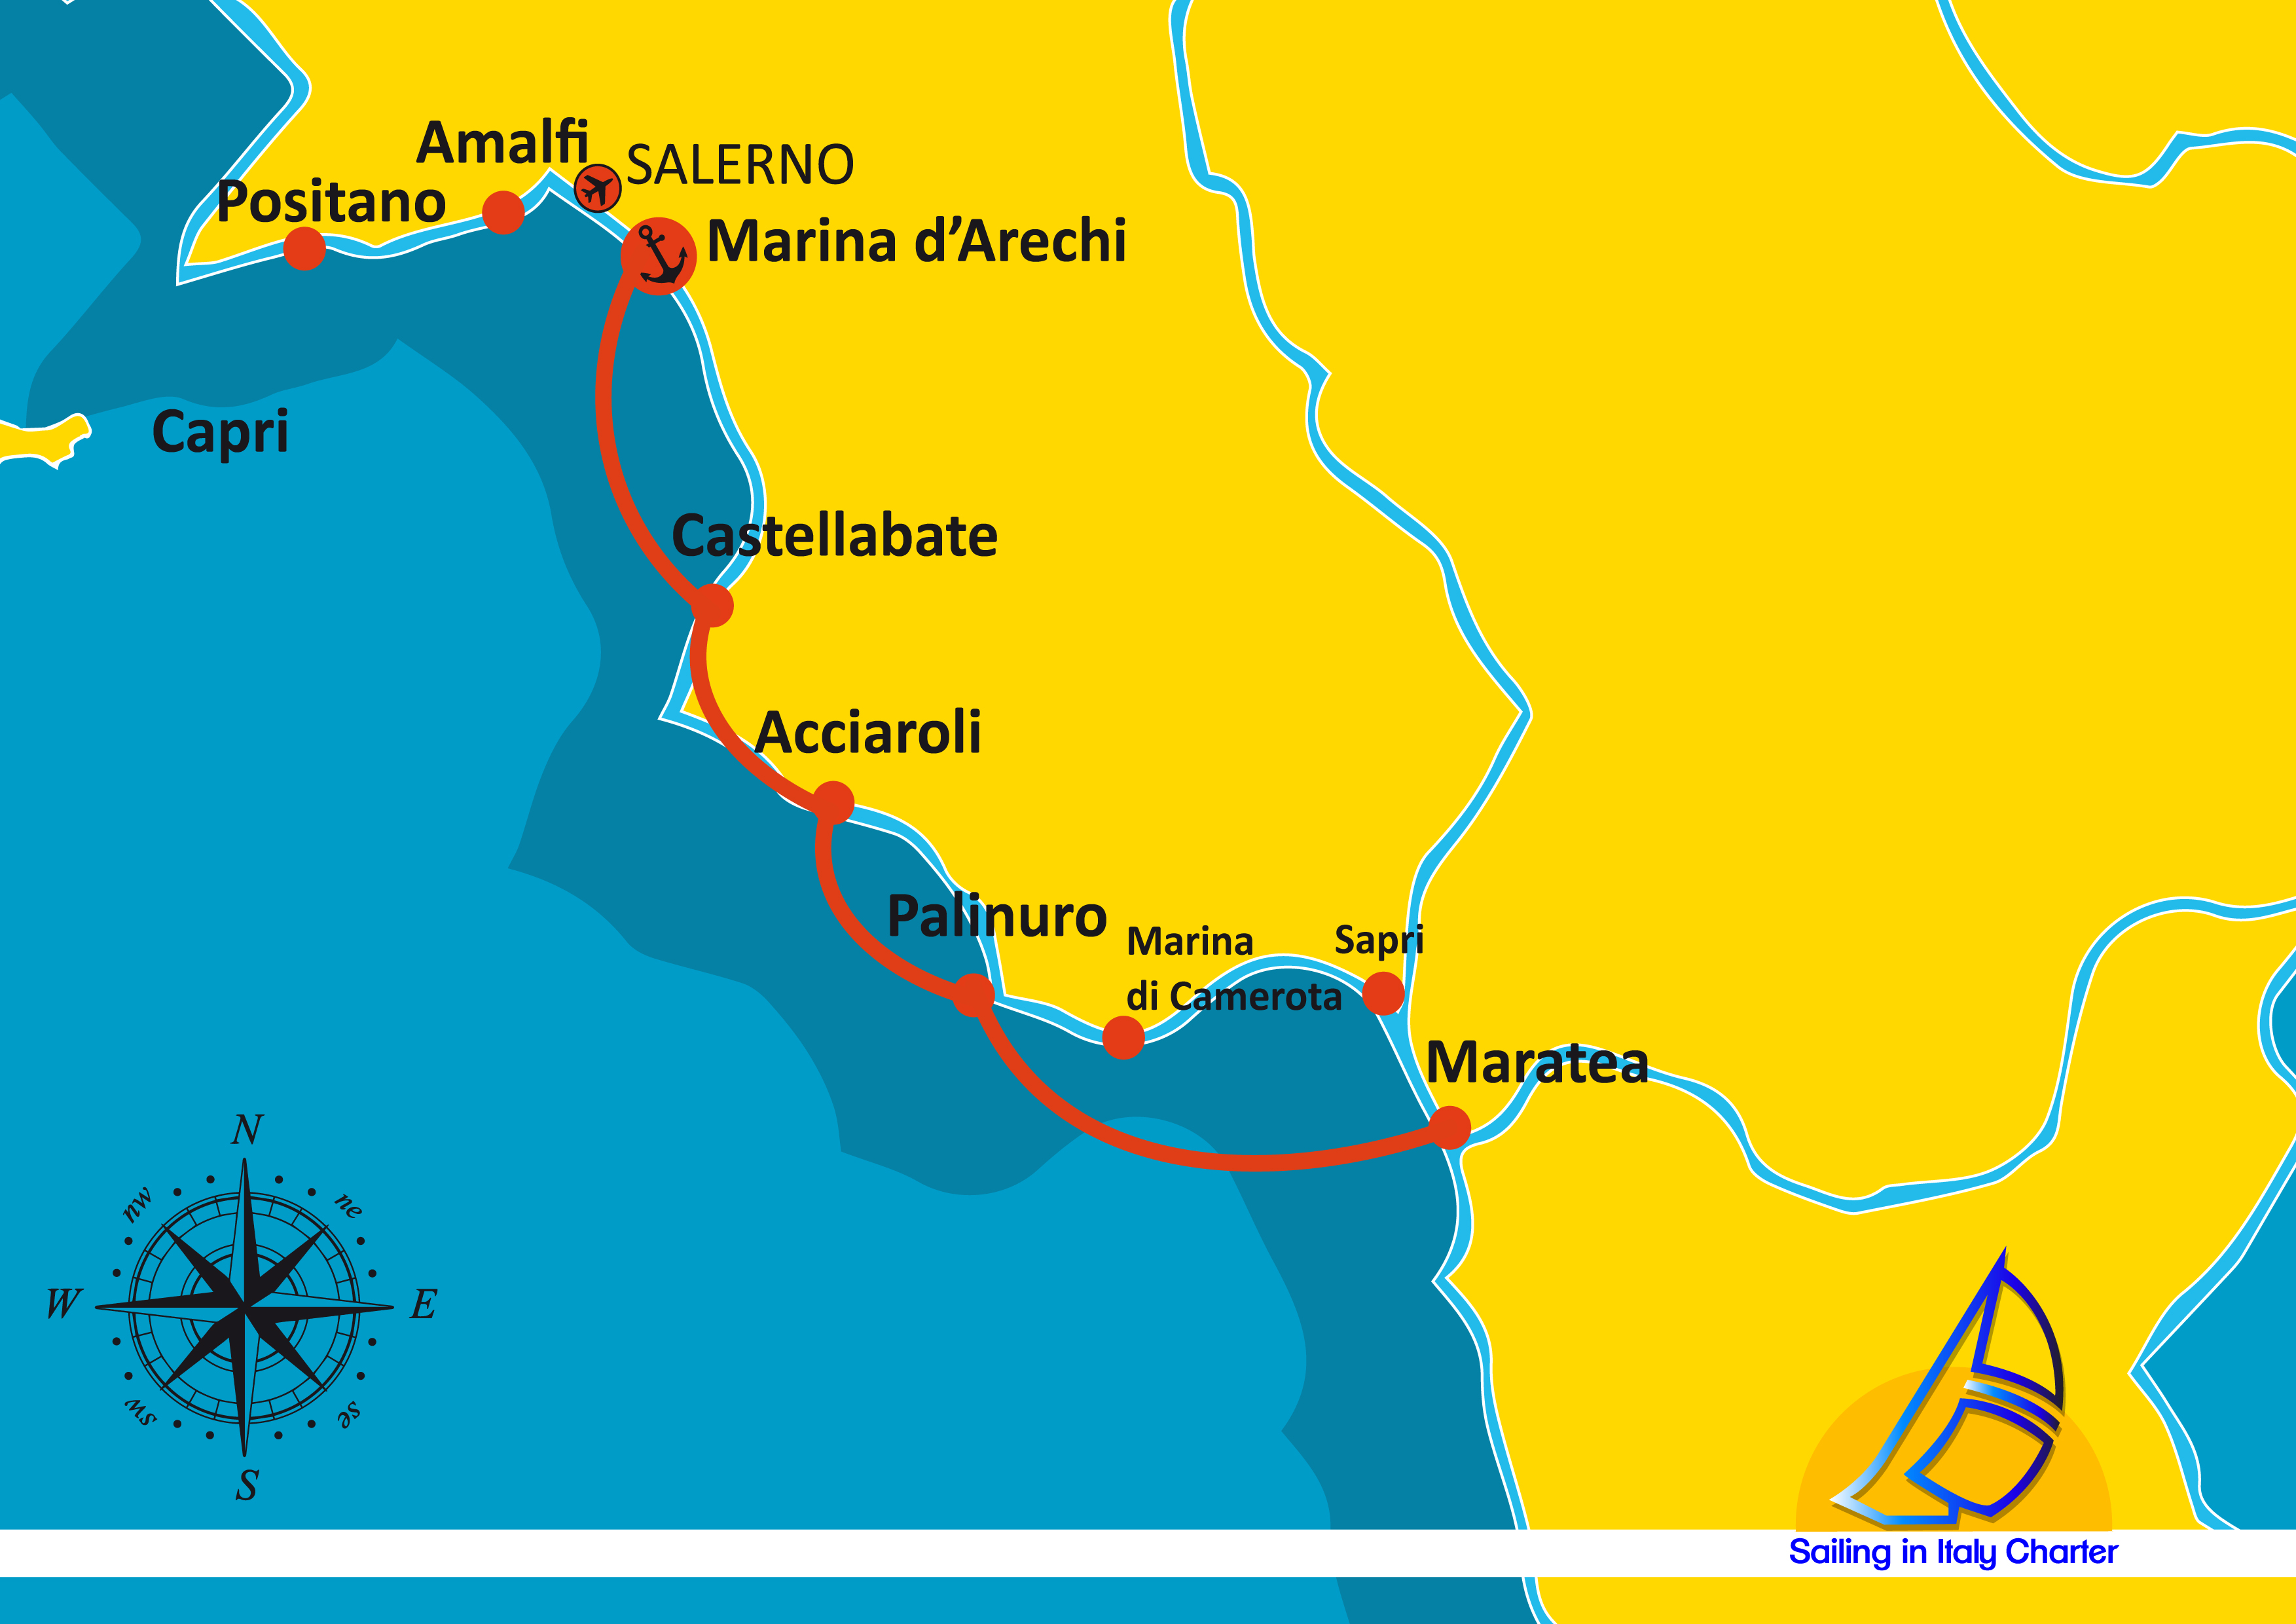 Cilento Region Italy Map.Sailing In Italy Charter Itinerario Salerno 03 7 Days